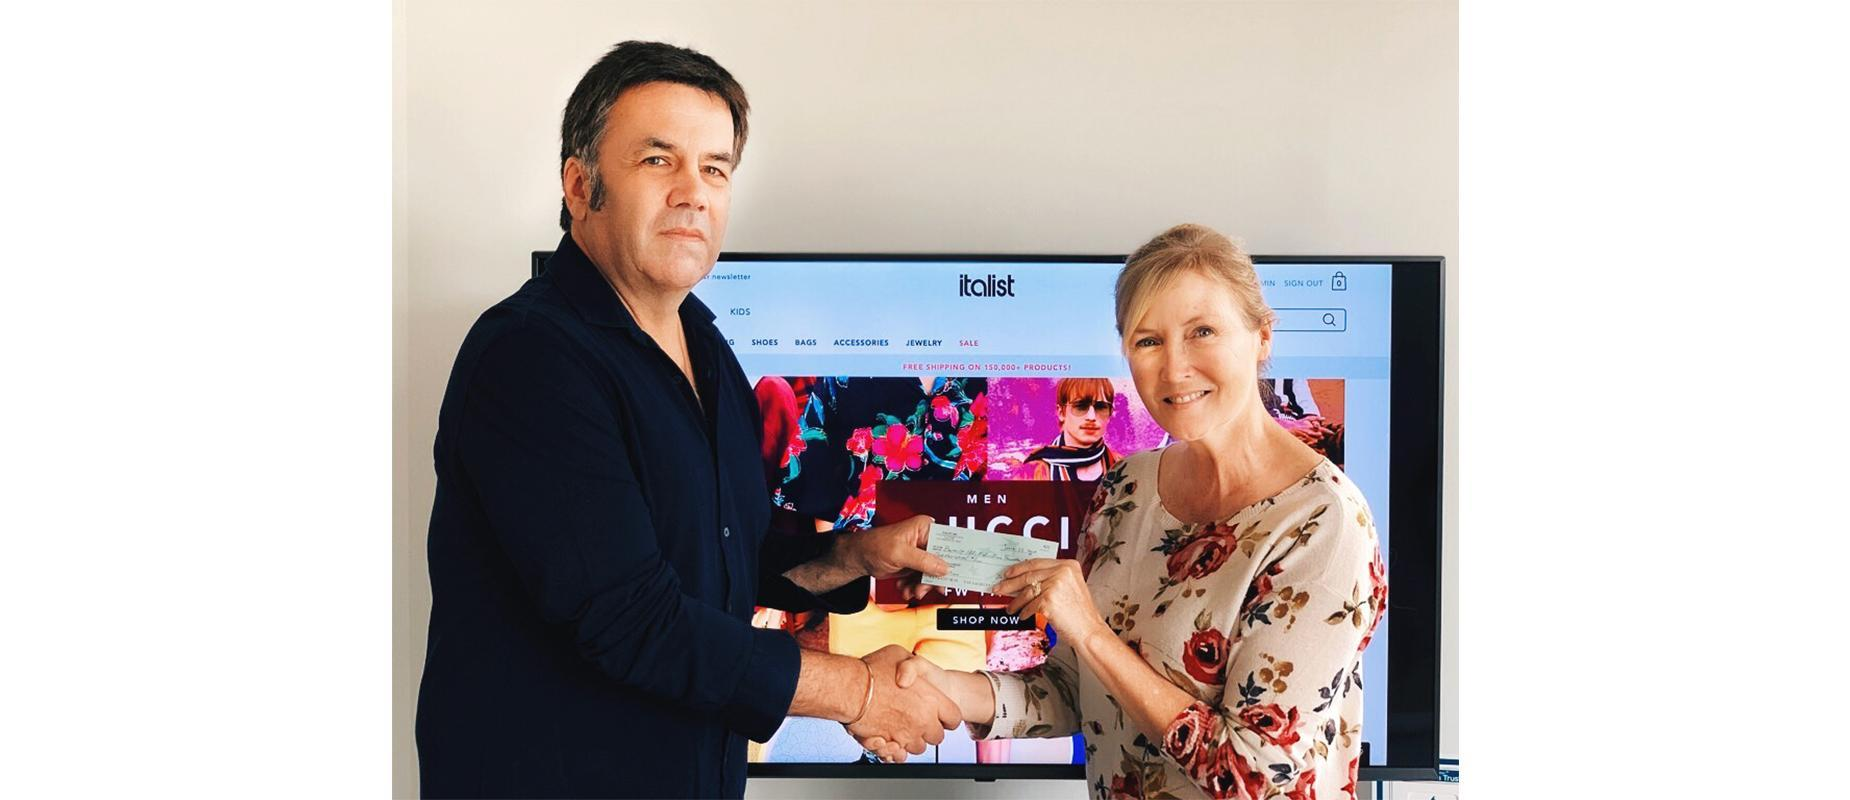 Diego Abba, CEO of Italist.com, presenting a business sponsorship donation check to BHEF President, Cindy Trost!